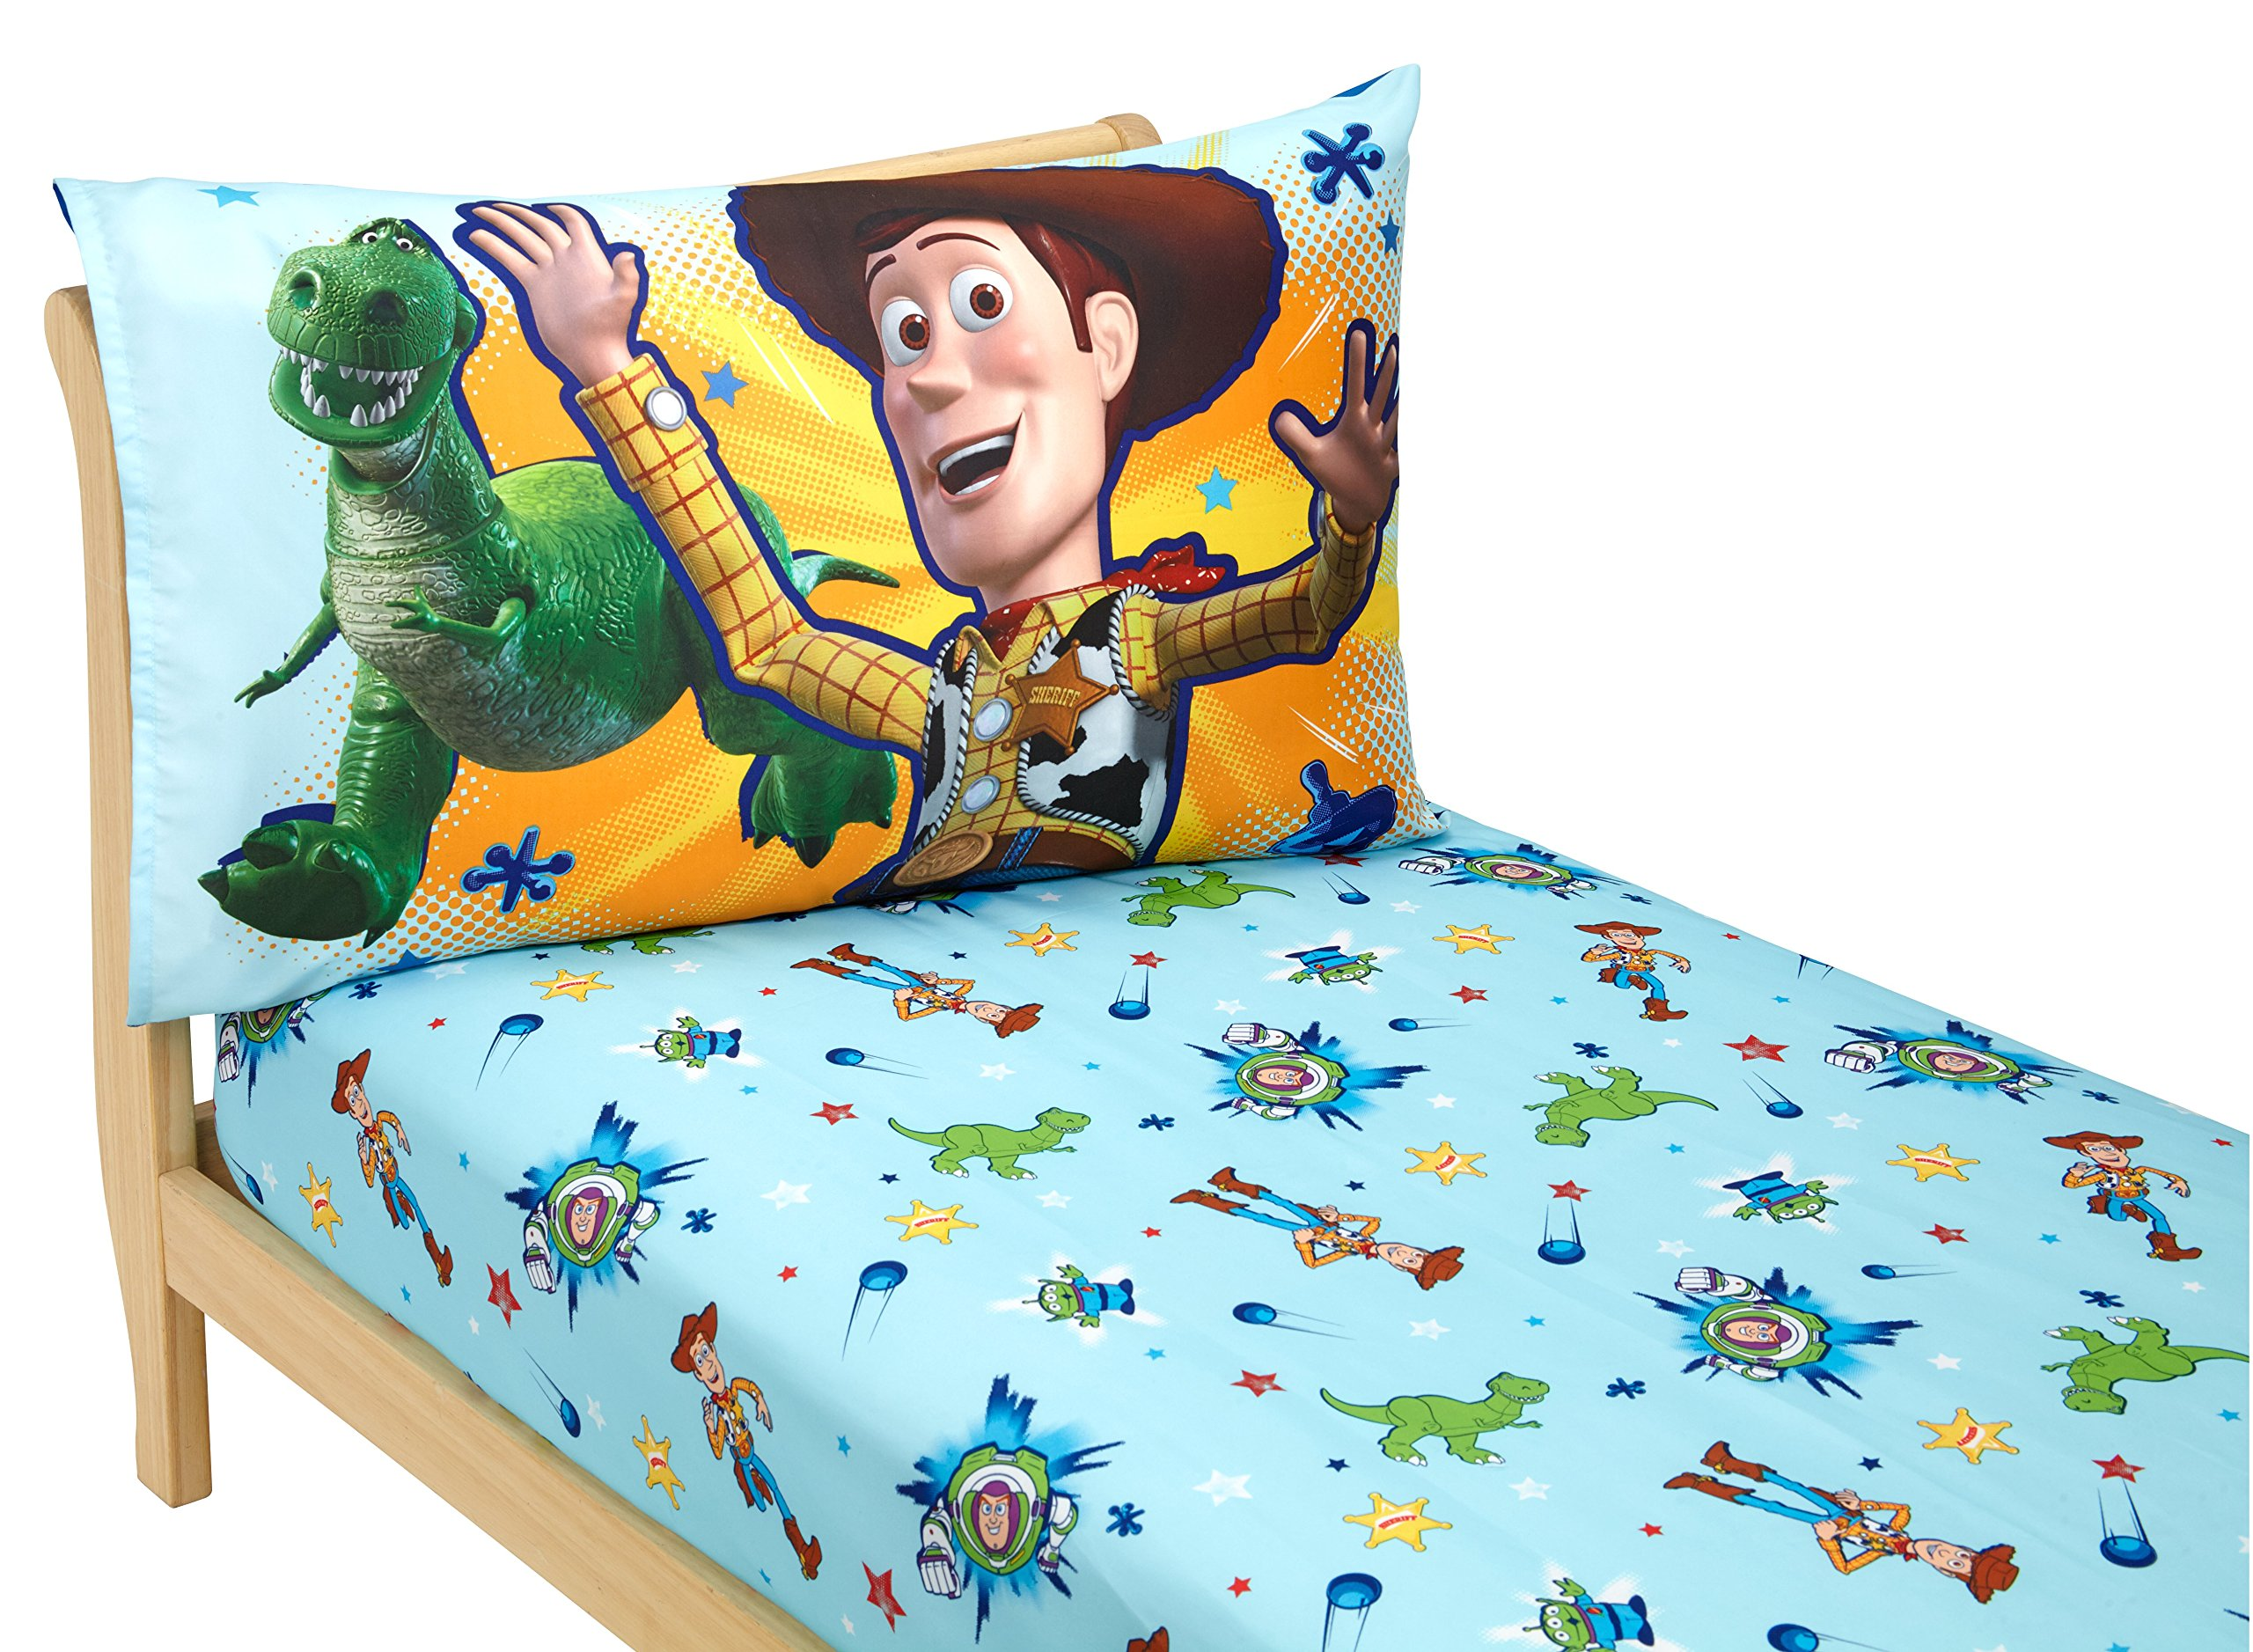 Disney Toy Story Power up 2 Pack Fitted Sheet and Pillowcase Toddler Sheet Set, Blue/Green by Disney (Image #2)